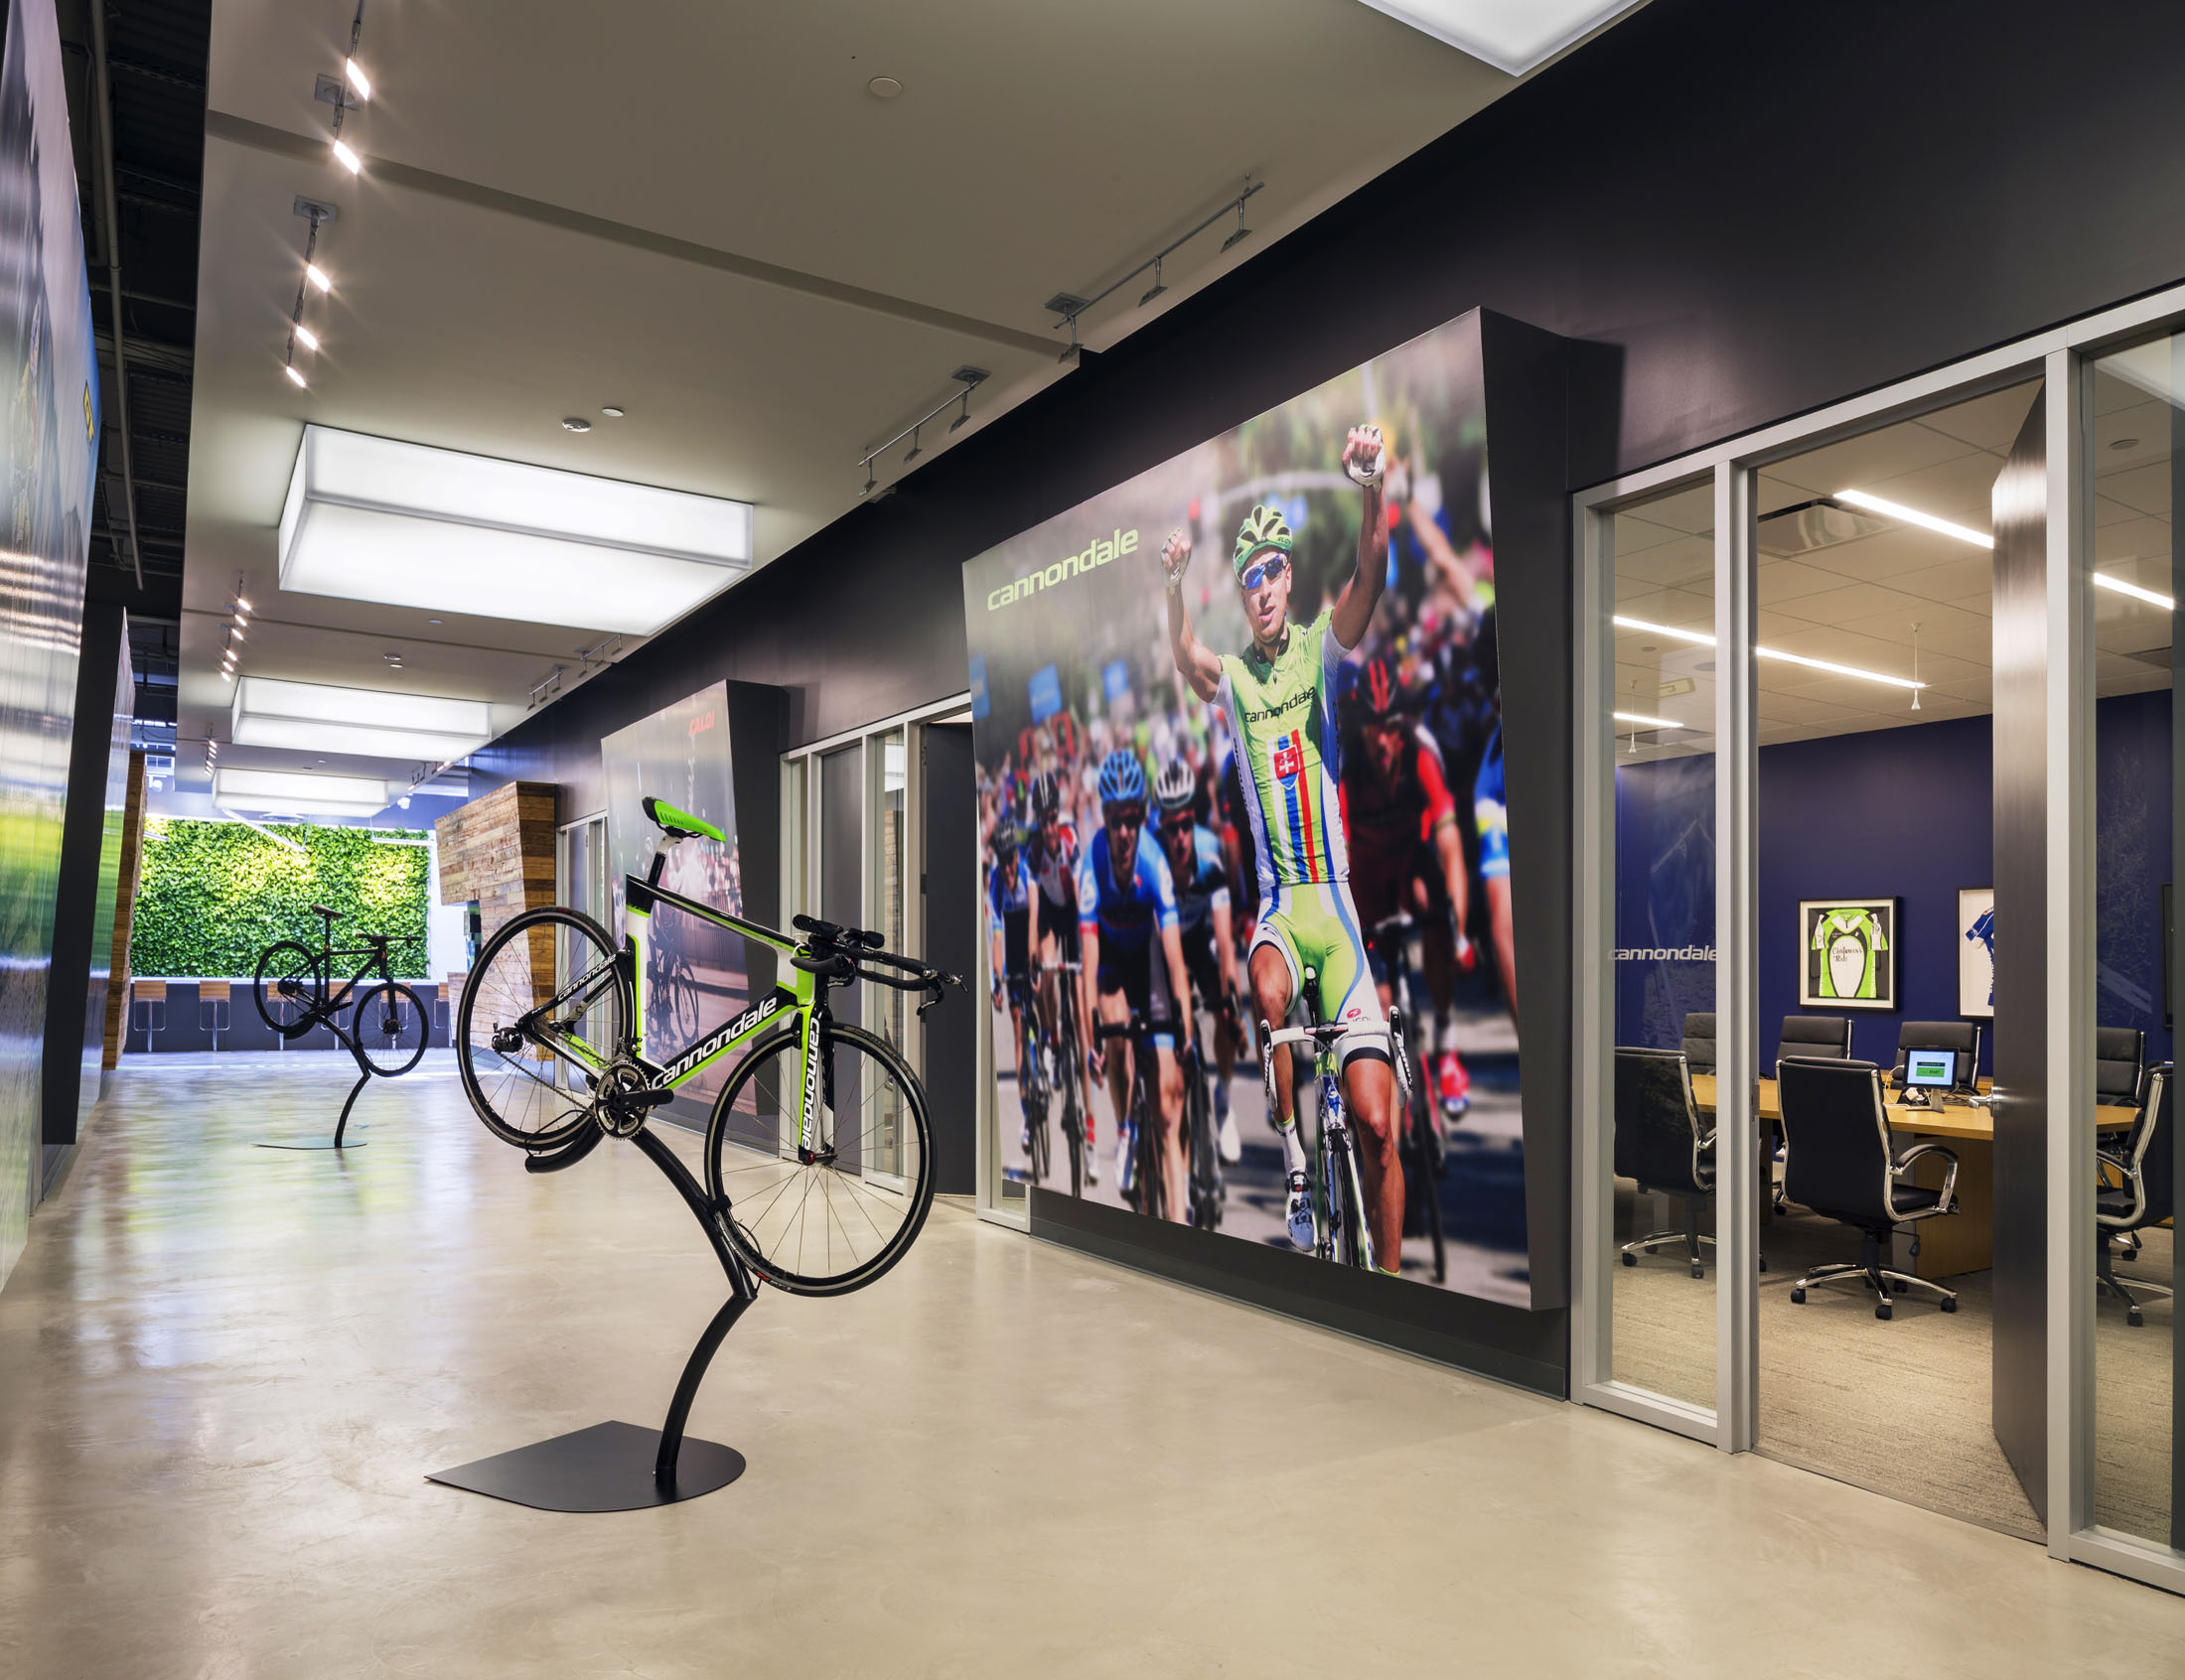 Cannondale   Connecticut  CPG Architects